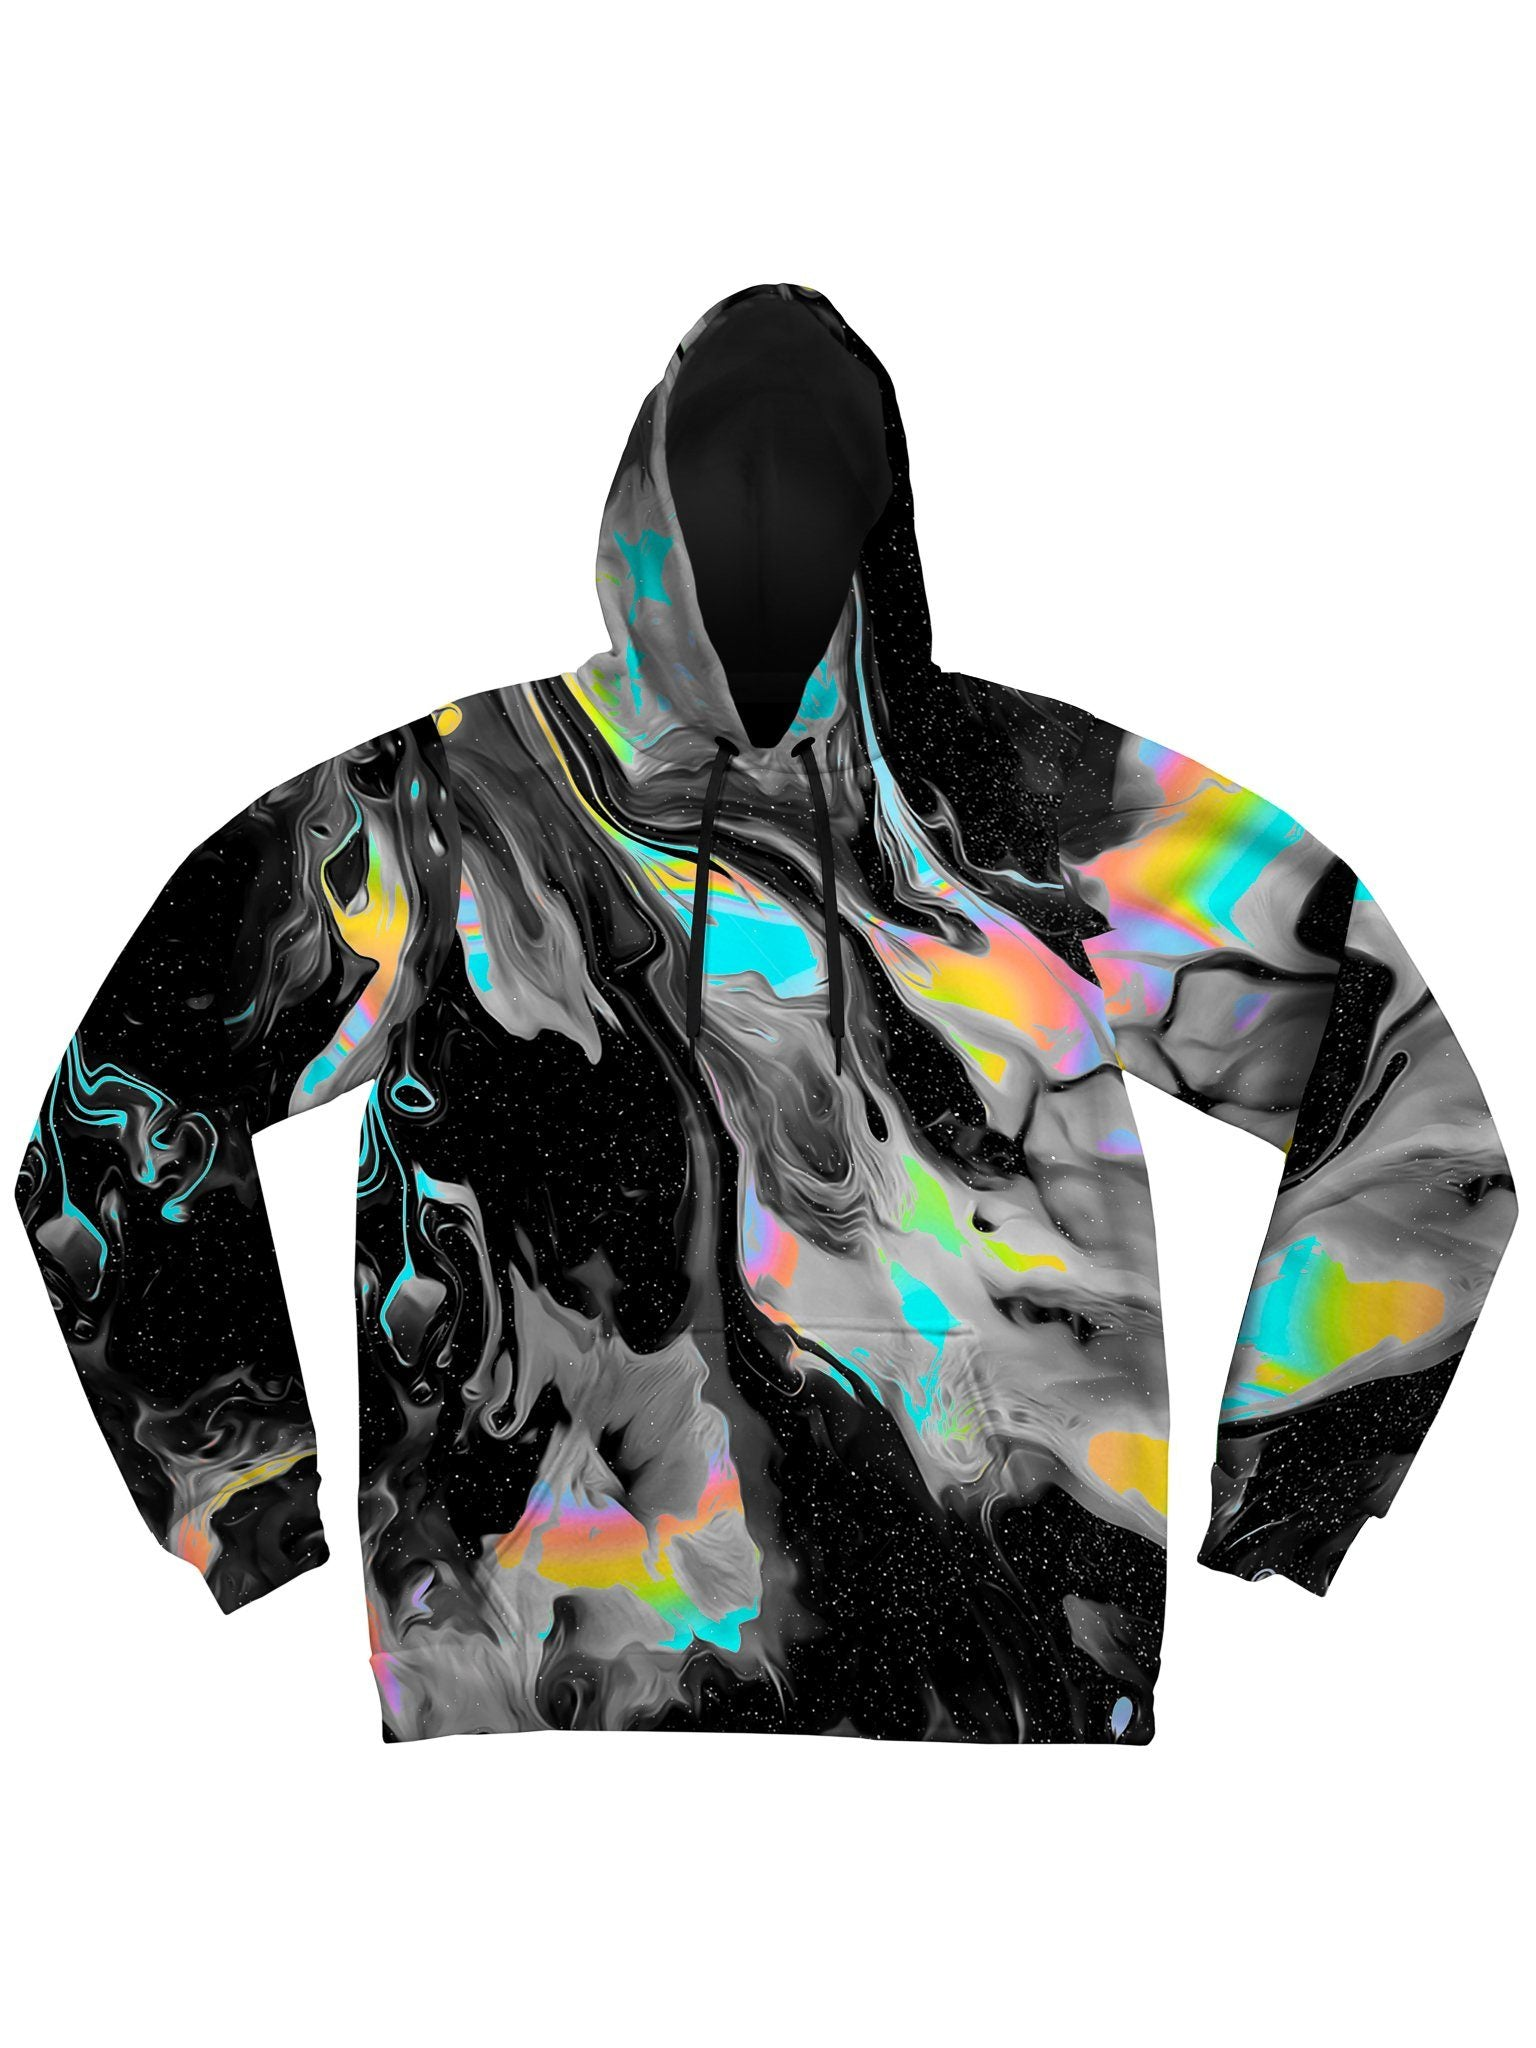 King Of Chrome Youth Hoodie Pullover Hoodies Electro Threads